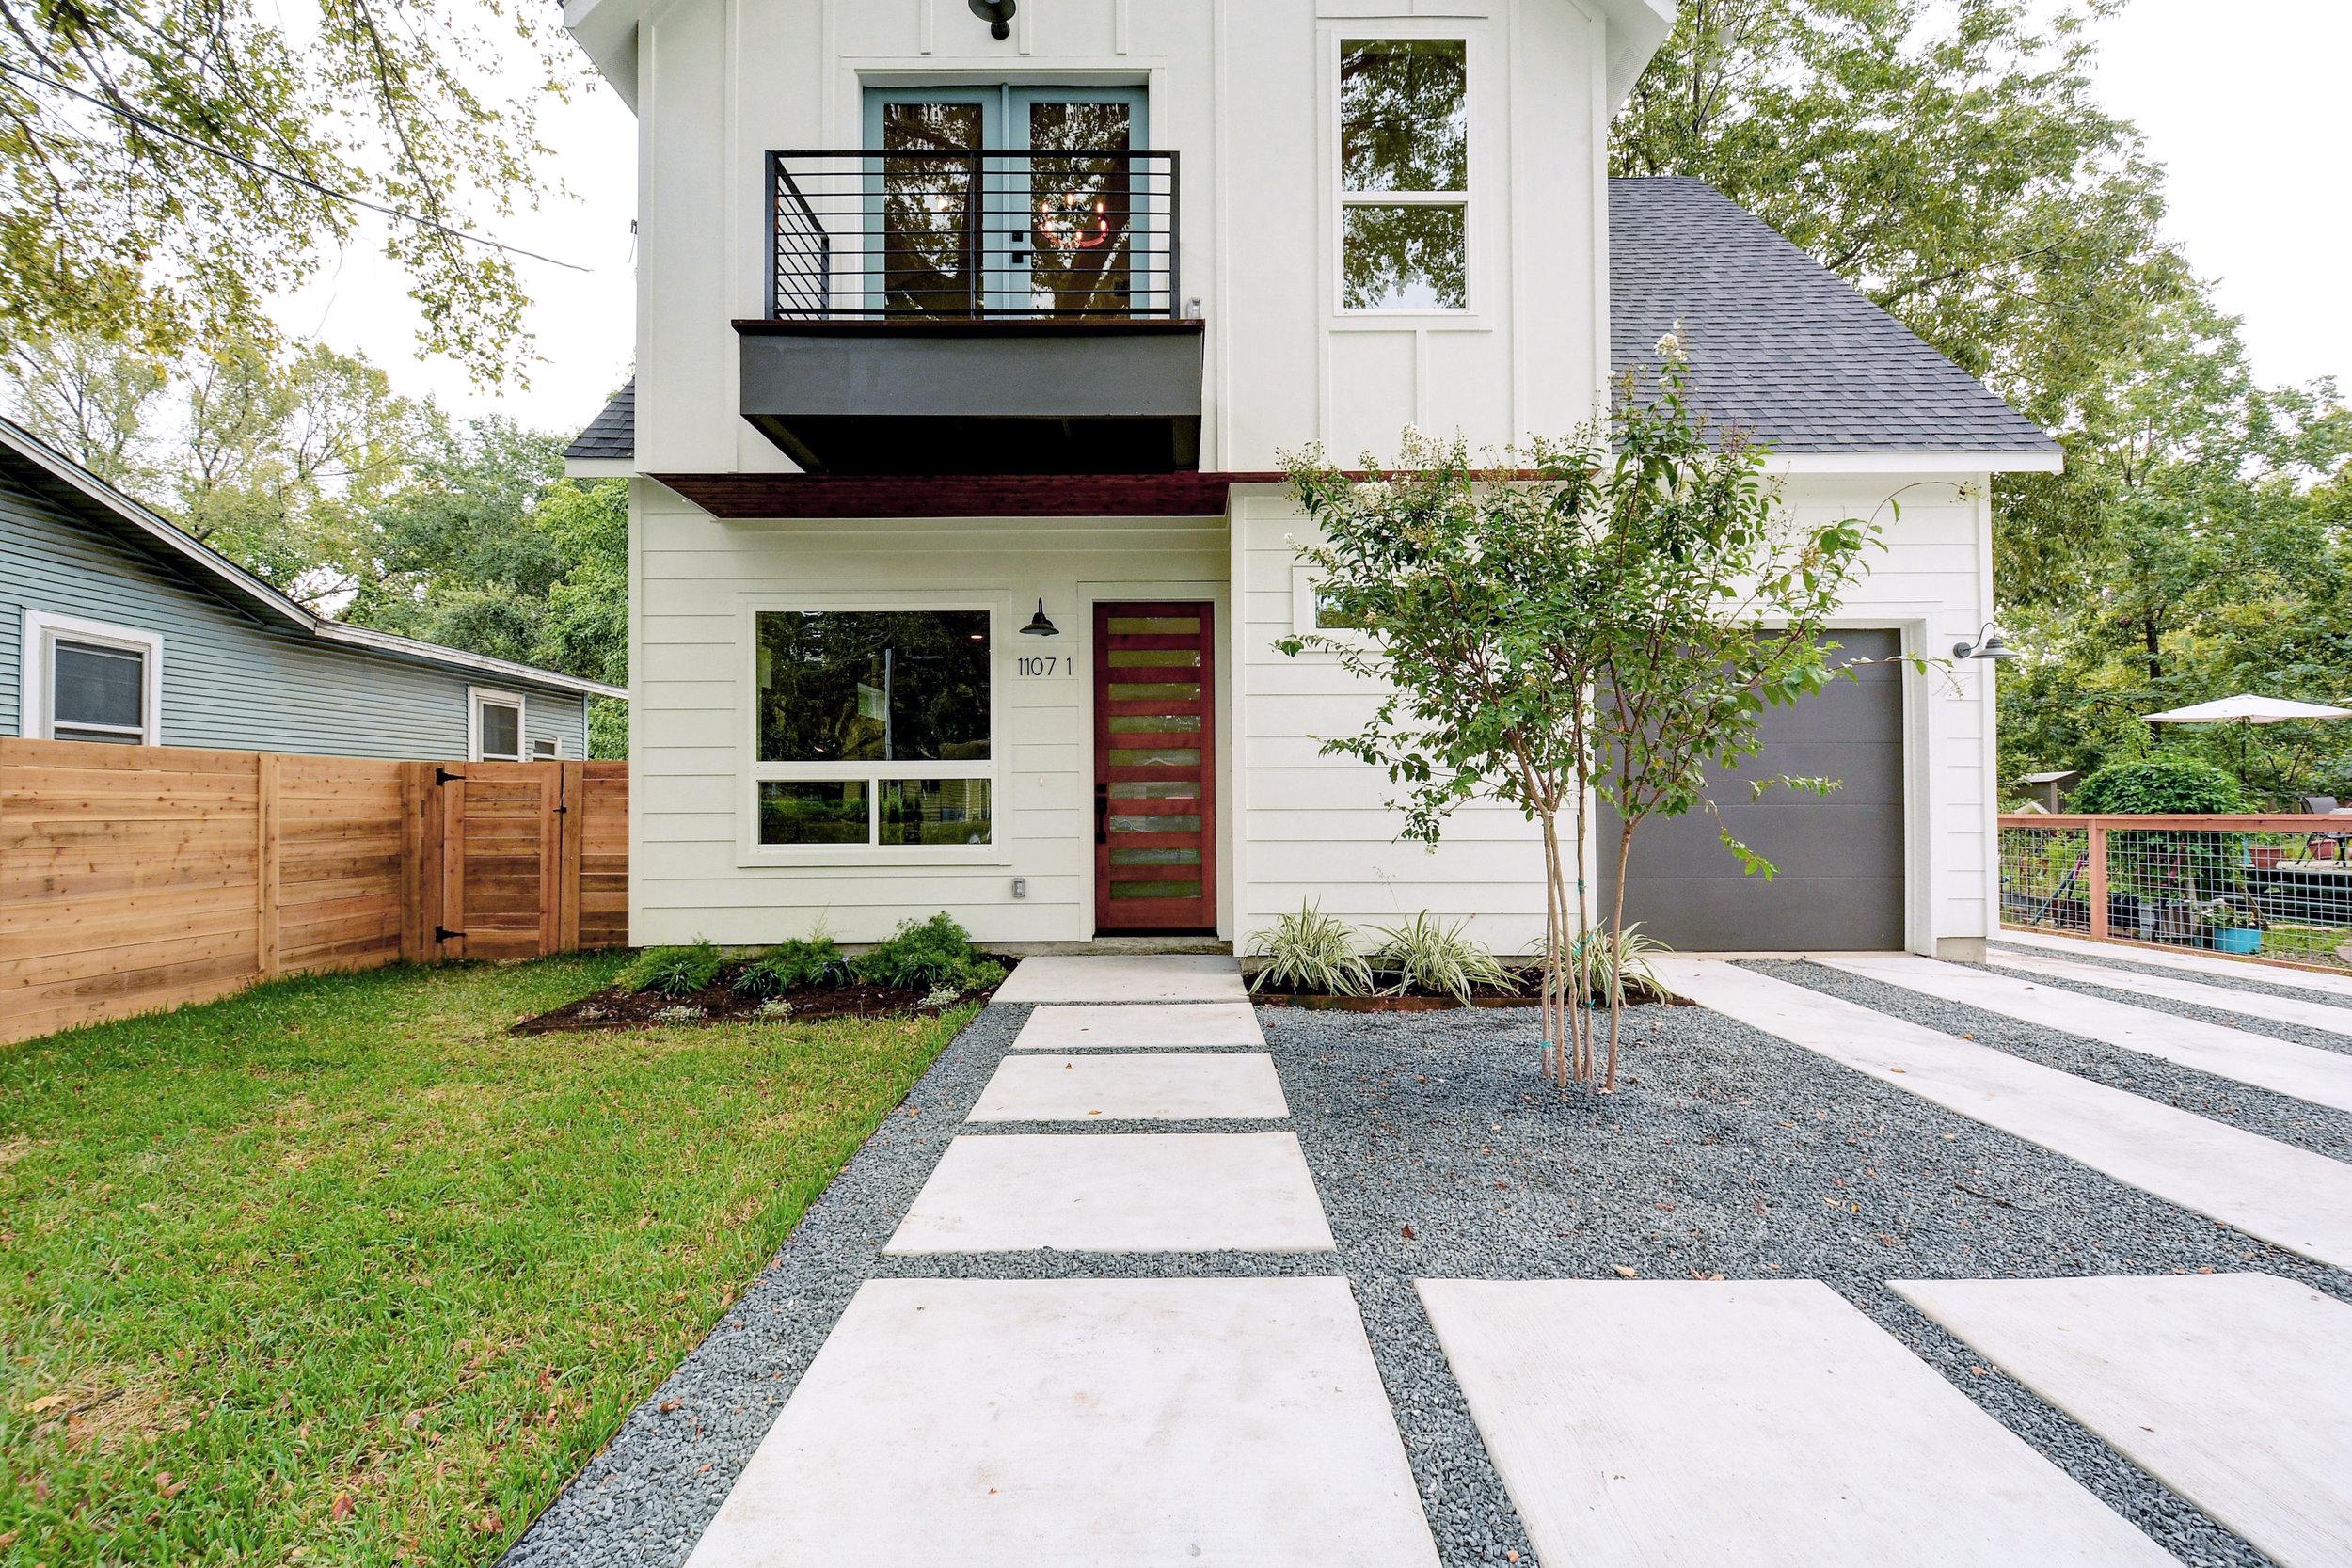 """The charming Modern Cottage architecture is perfect for a white color scheme with wood accents. The modern front door and balcony contrast the barn lights. The french doors are painted Benjamin Moore Seastar and the garage door is my go-to Sherwin Williams """"Urbane Bronze""""."""